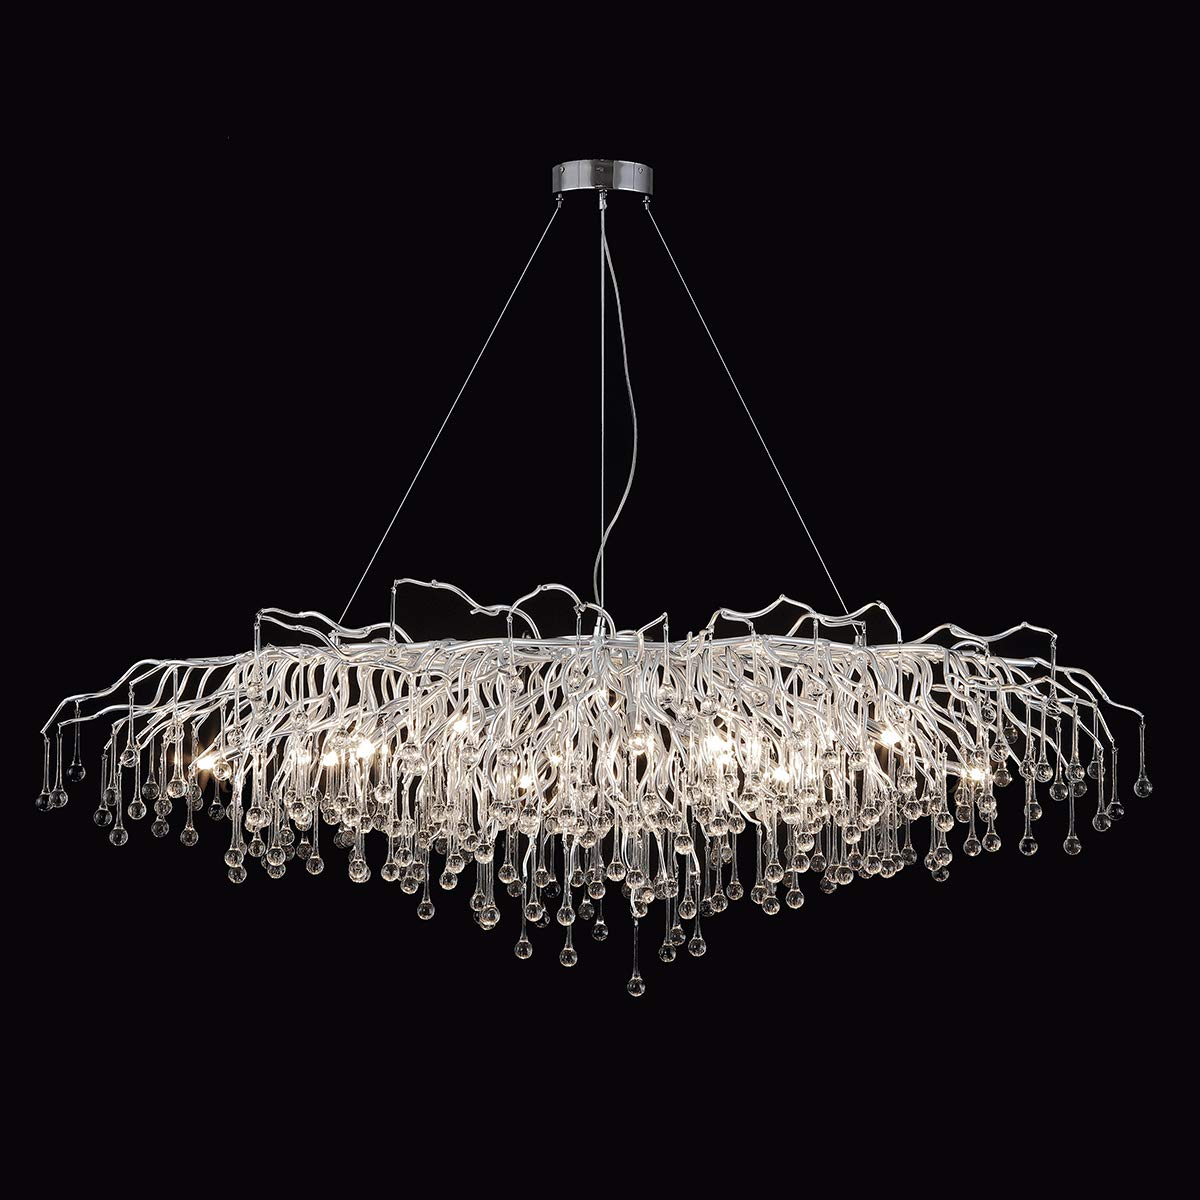 antilisha rectangle chandelier for dining room foyer modern crystal chandeliers lighting large for high ceilings pendant forest rain drops linear long